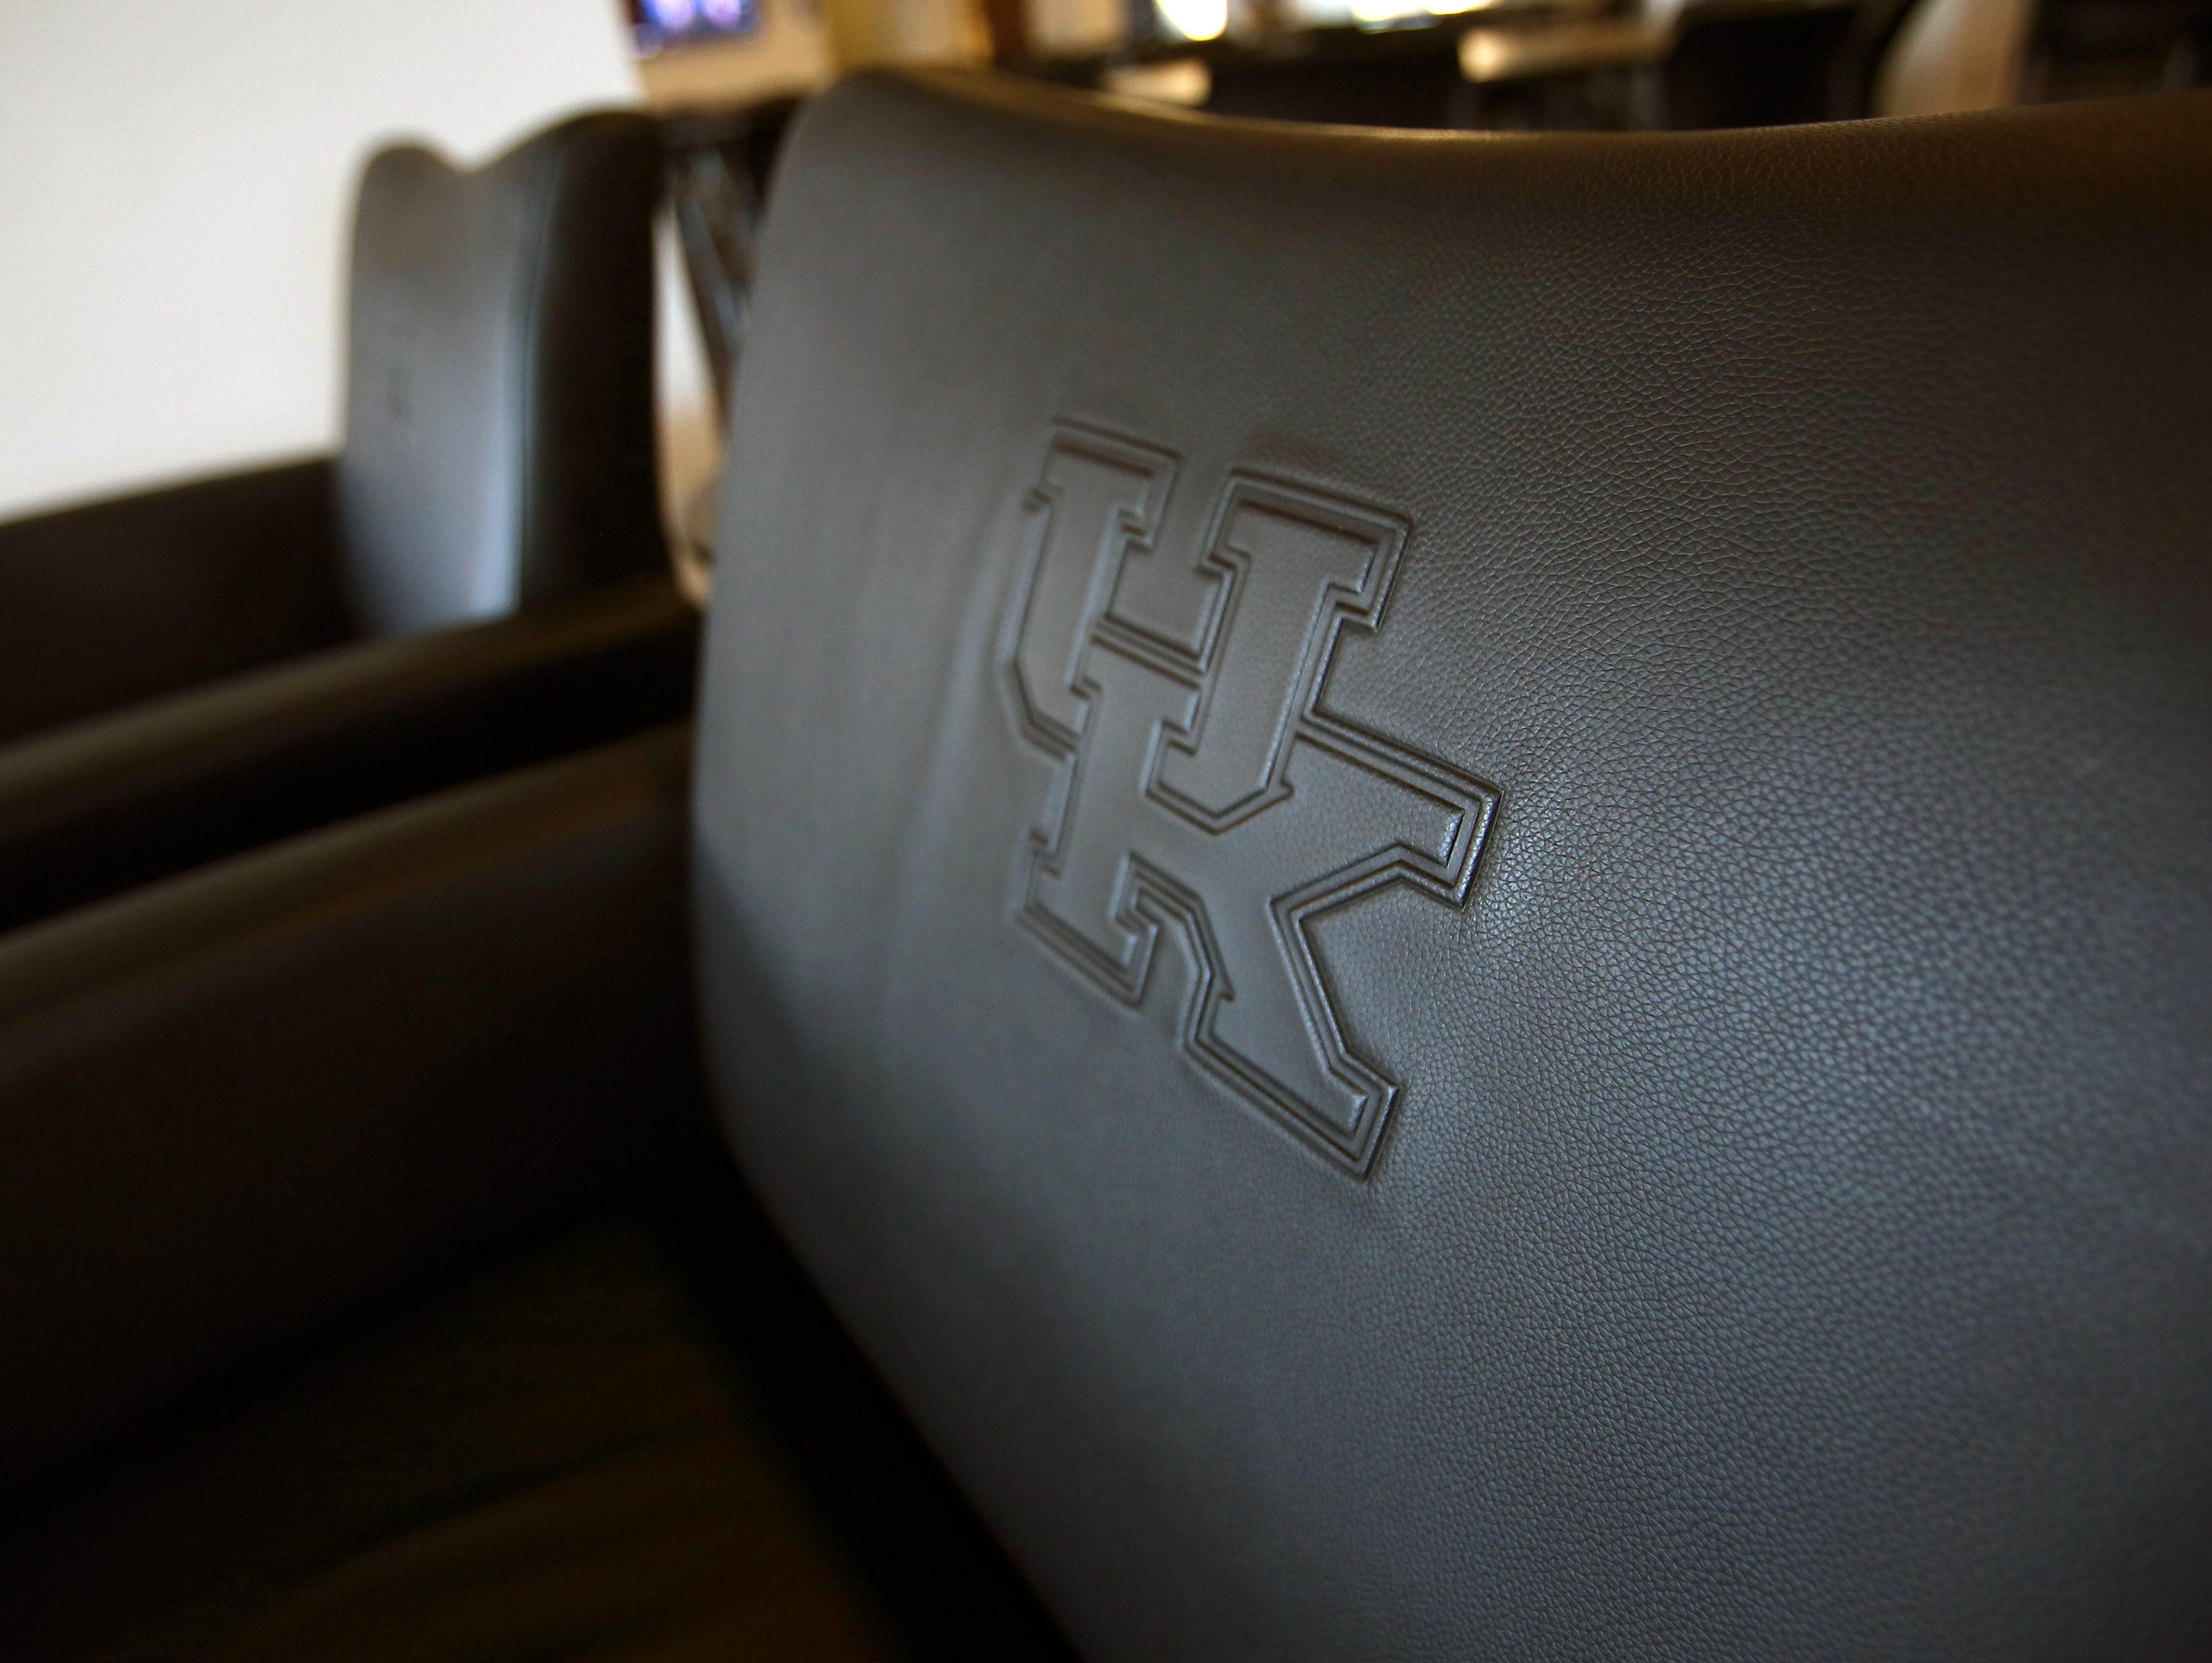 The new UK football recruiting room at Commonwealth Stadium has embroidered chairs. Sept. 24, 2015